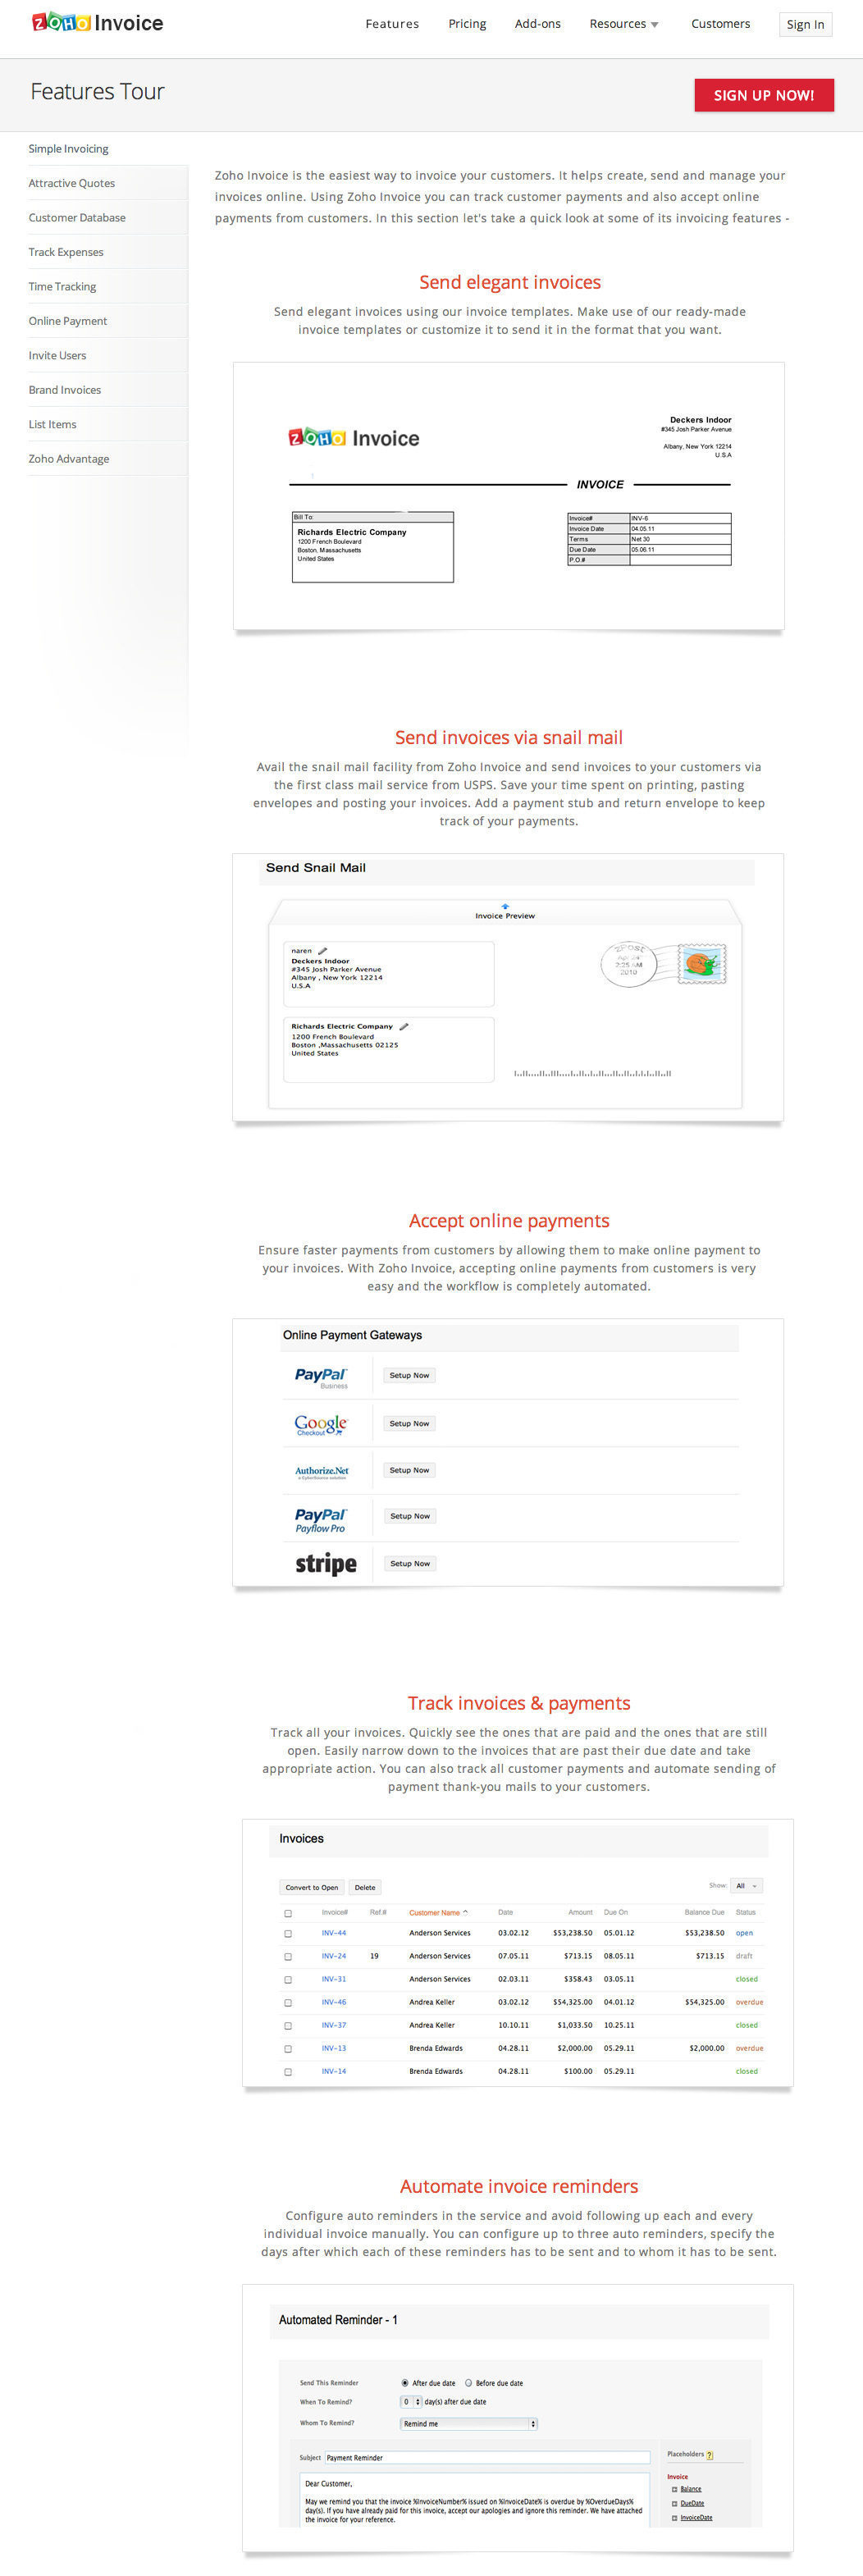 Sandiegolocksmithsus  Unique Top  Complaints And Reviews About Zoho Invoice With Lovely Zoho Invoice Pricing Zoho Invoice  Simple Invoicing  With Nice Blank Invoice Templates Also How To Do Invoices In Addition Invoice Def And Professional Invoice Template As Well As Free Excel Invoice Template Additionally Concur Invoice From Consumeraffairscom With Sandiegolocksmithsus  Lovely Top  Complaints And Reviews About Zoho Invoice With Nice Zoho Invoice Pricing Zoho Invoice  Simple Invoicing  And Unique Blank Invoice Templates Also How To Do Invoices In Addition Invoice Def From Consumeraffairscom